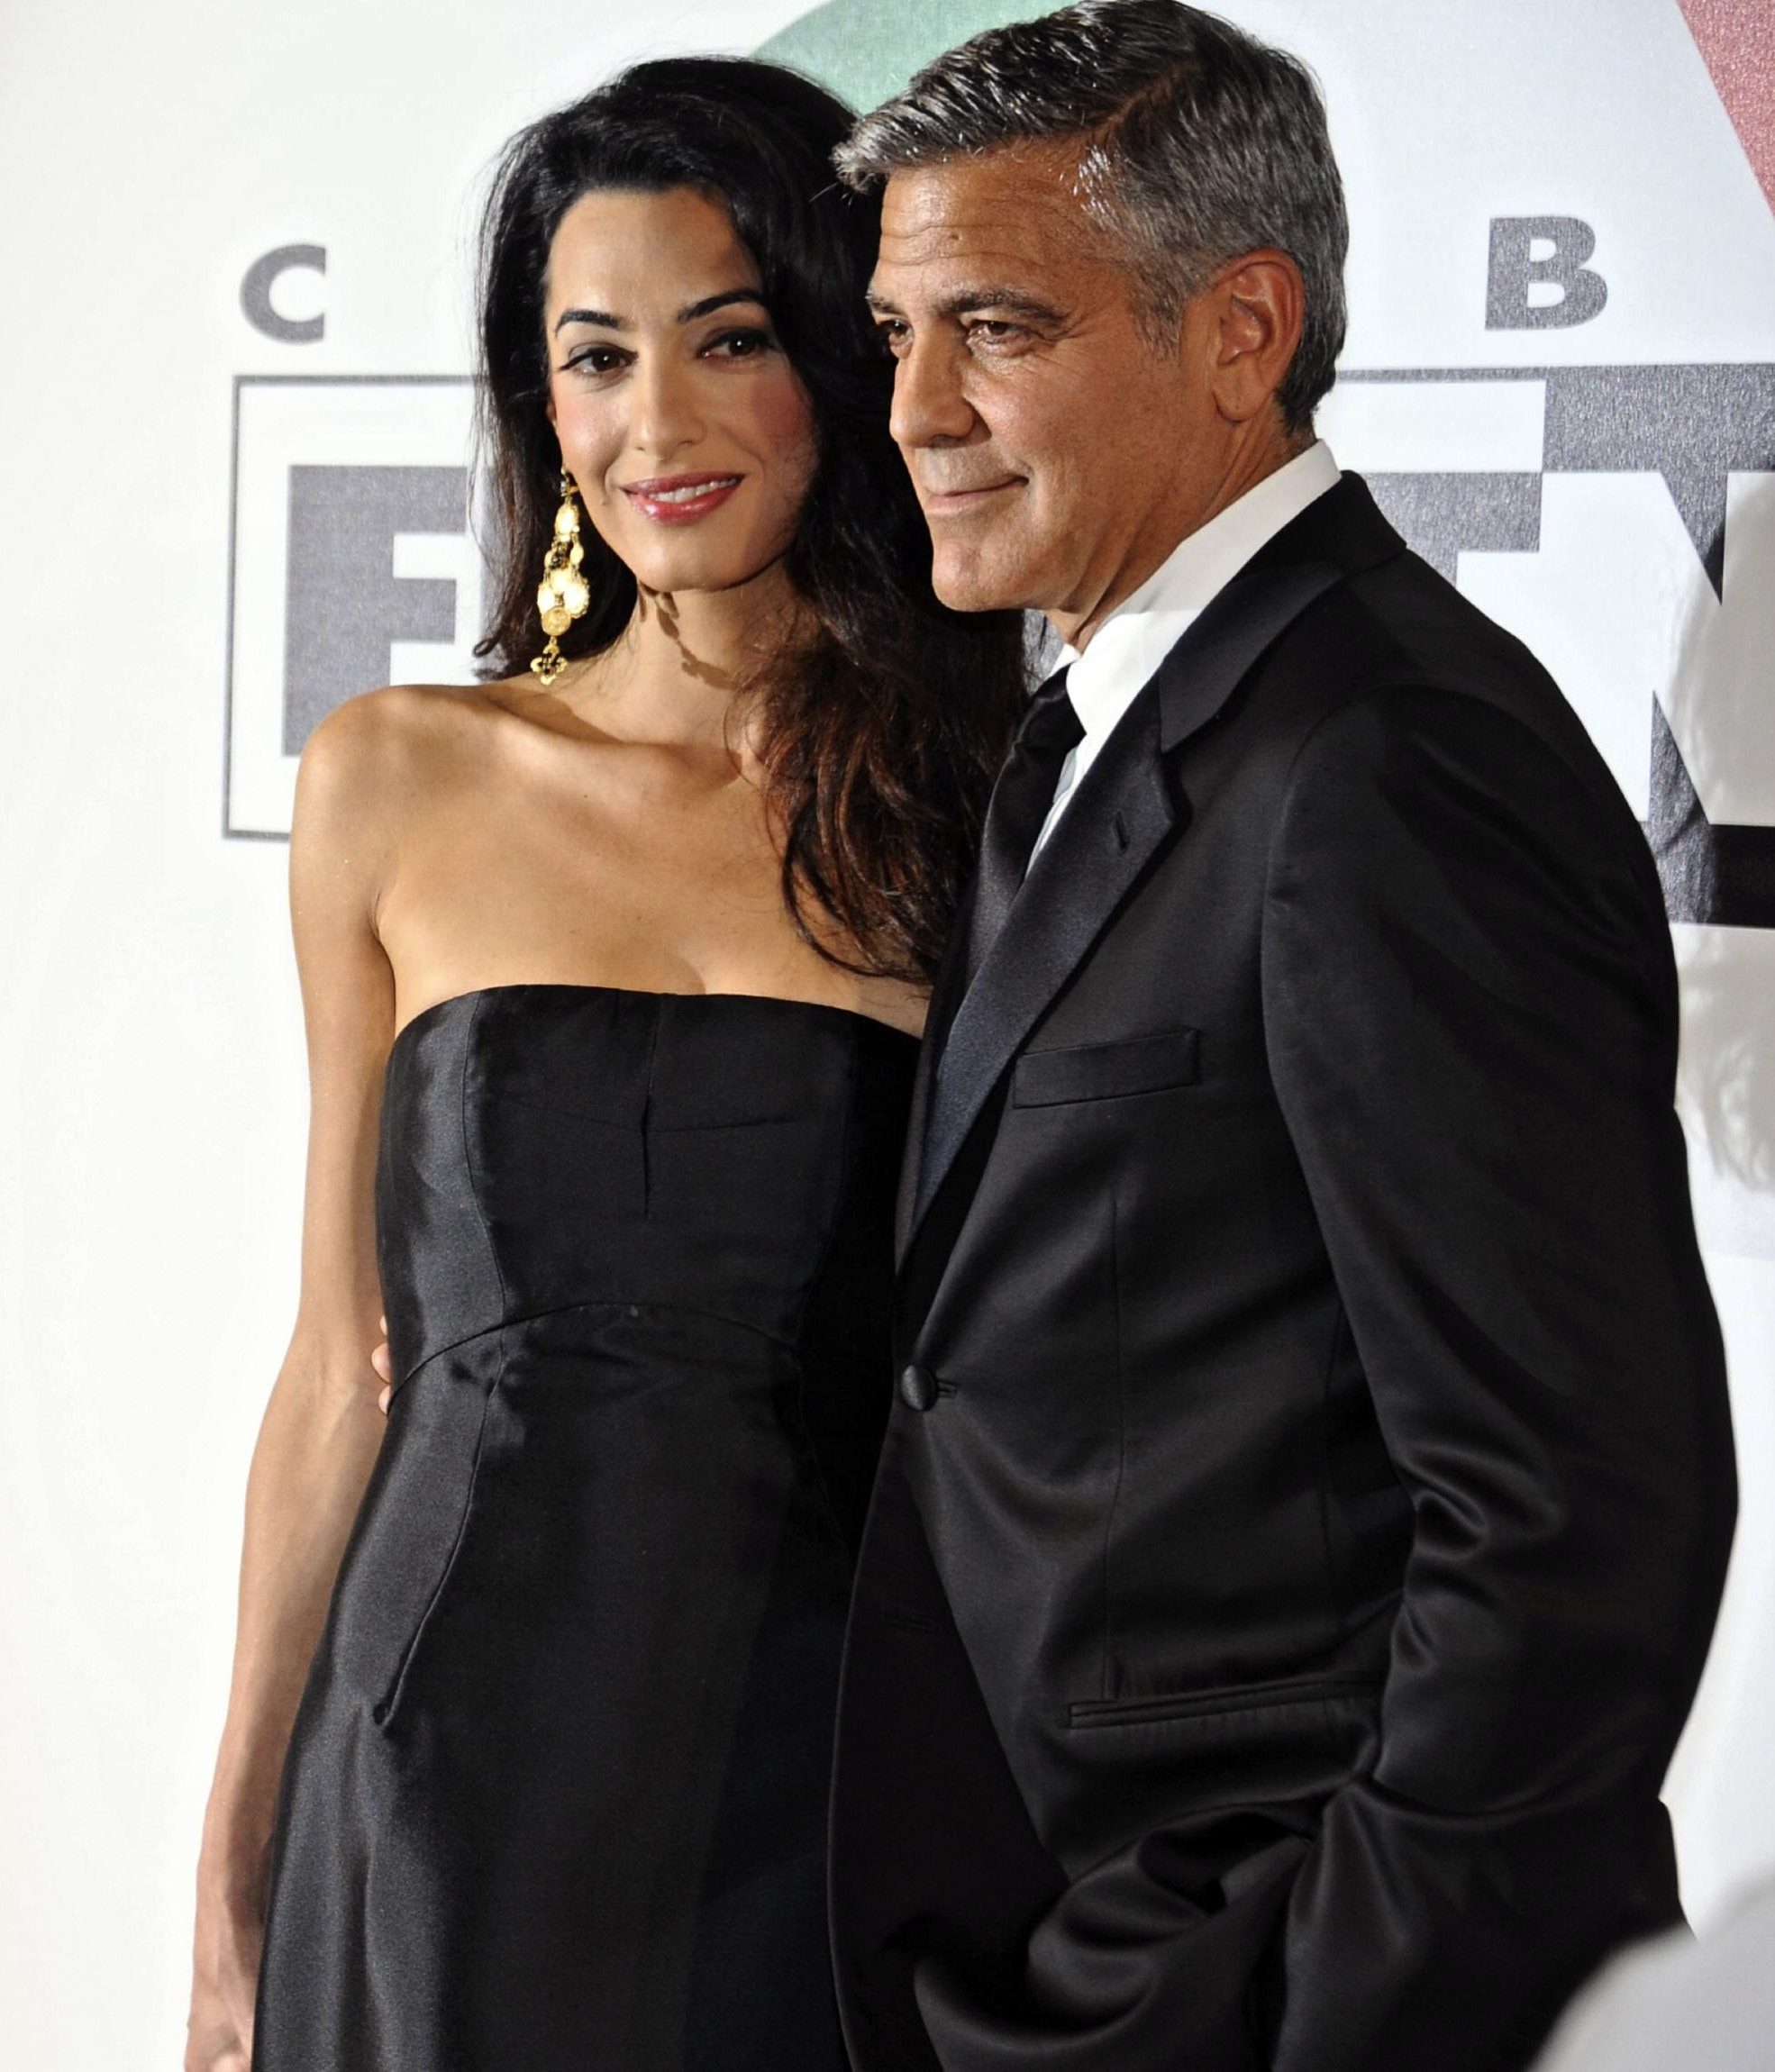 George Clooney e Amal Alamuddin (Foto: The Grosby Group)